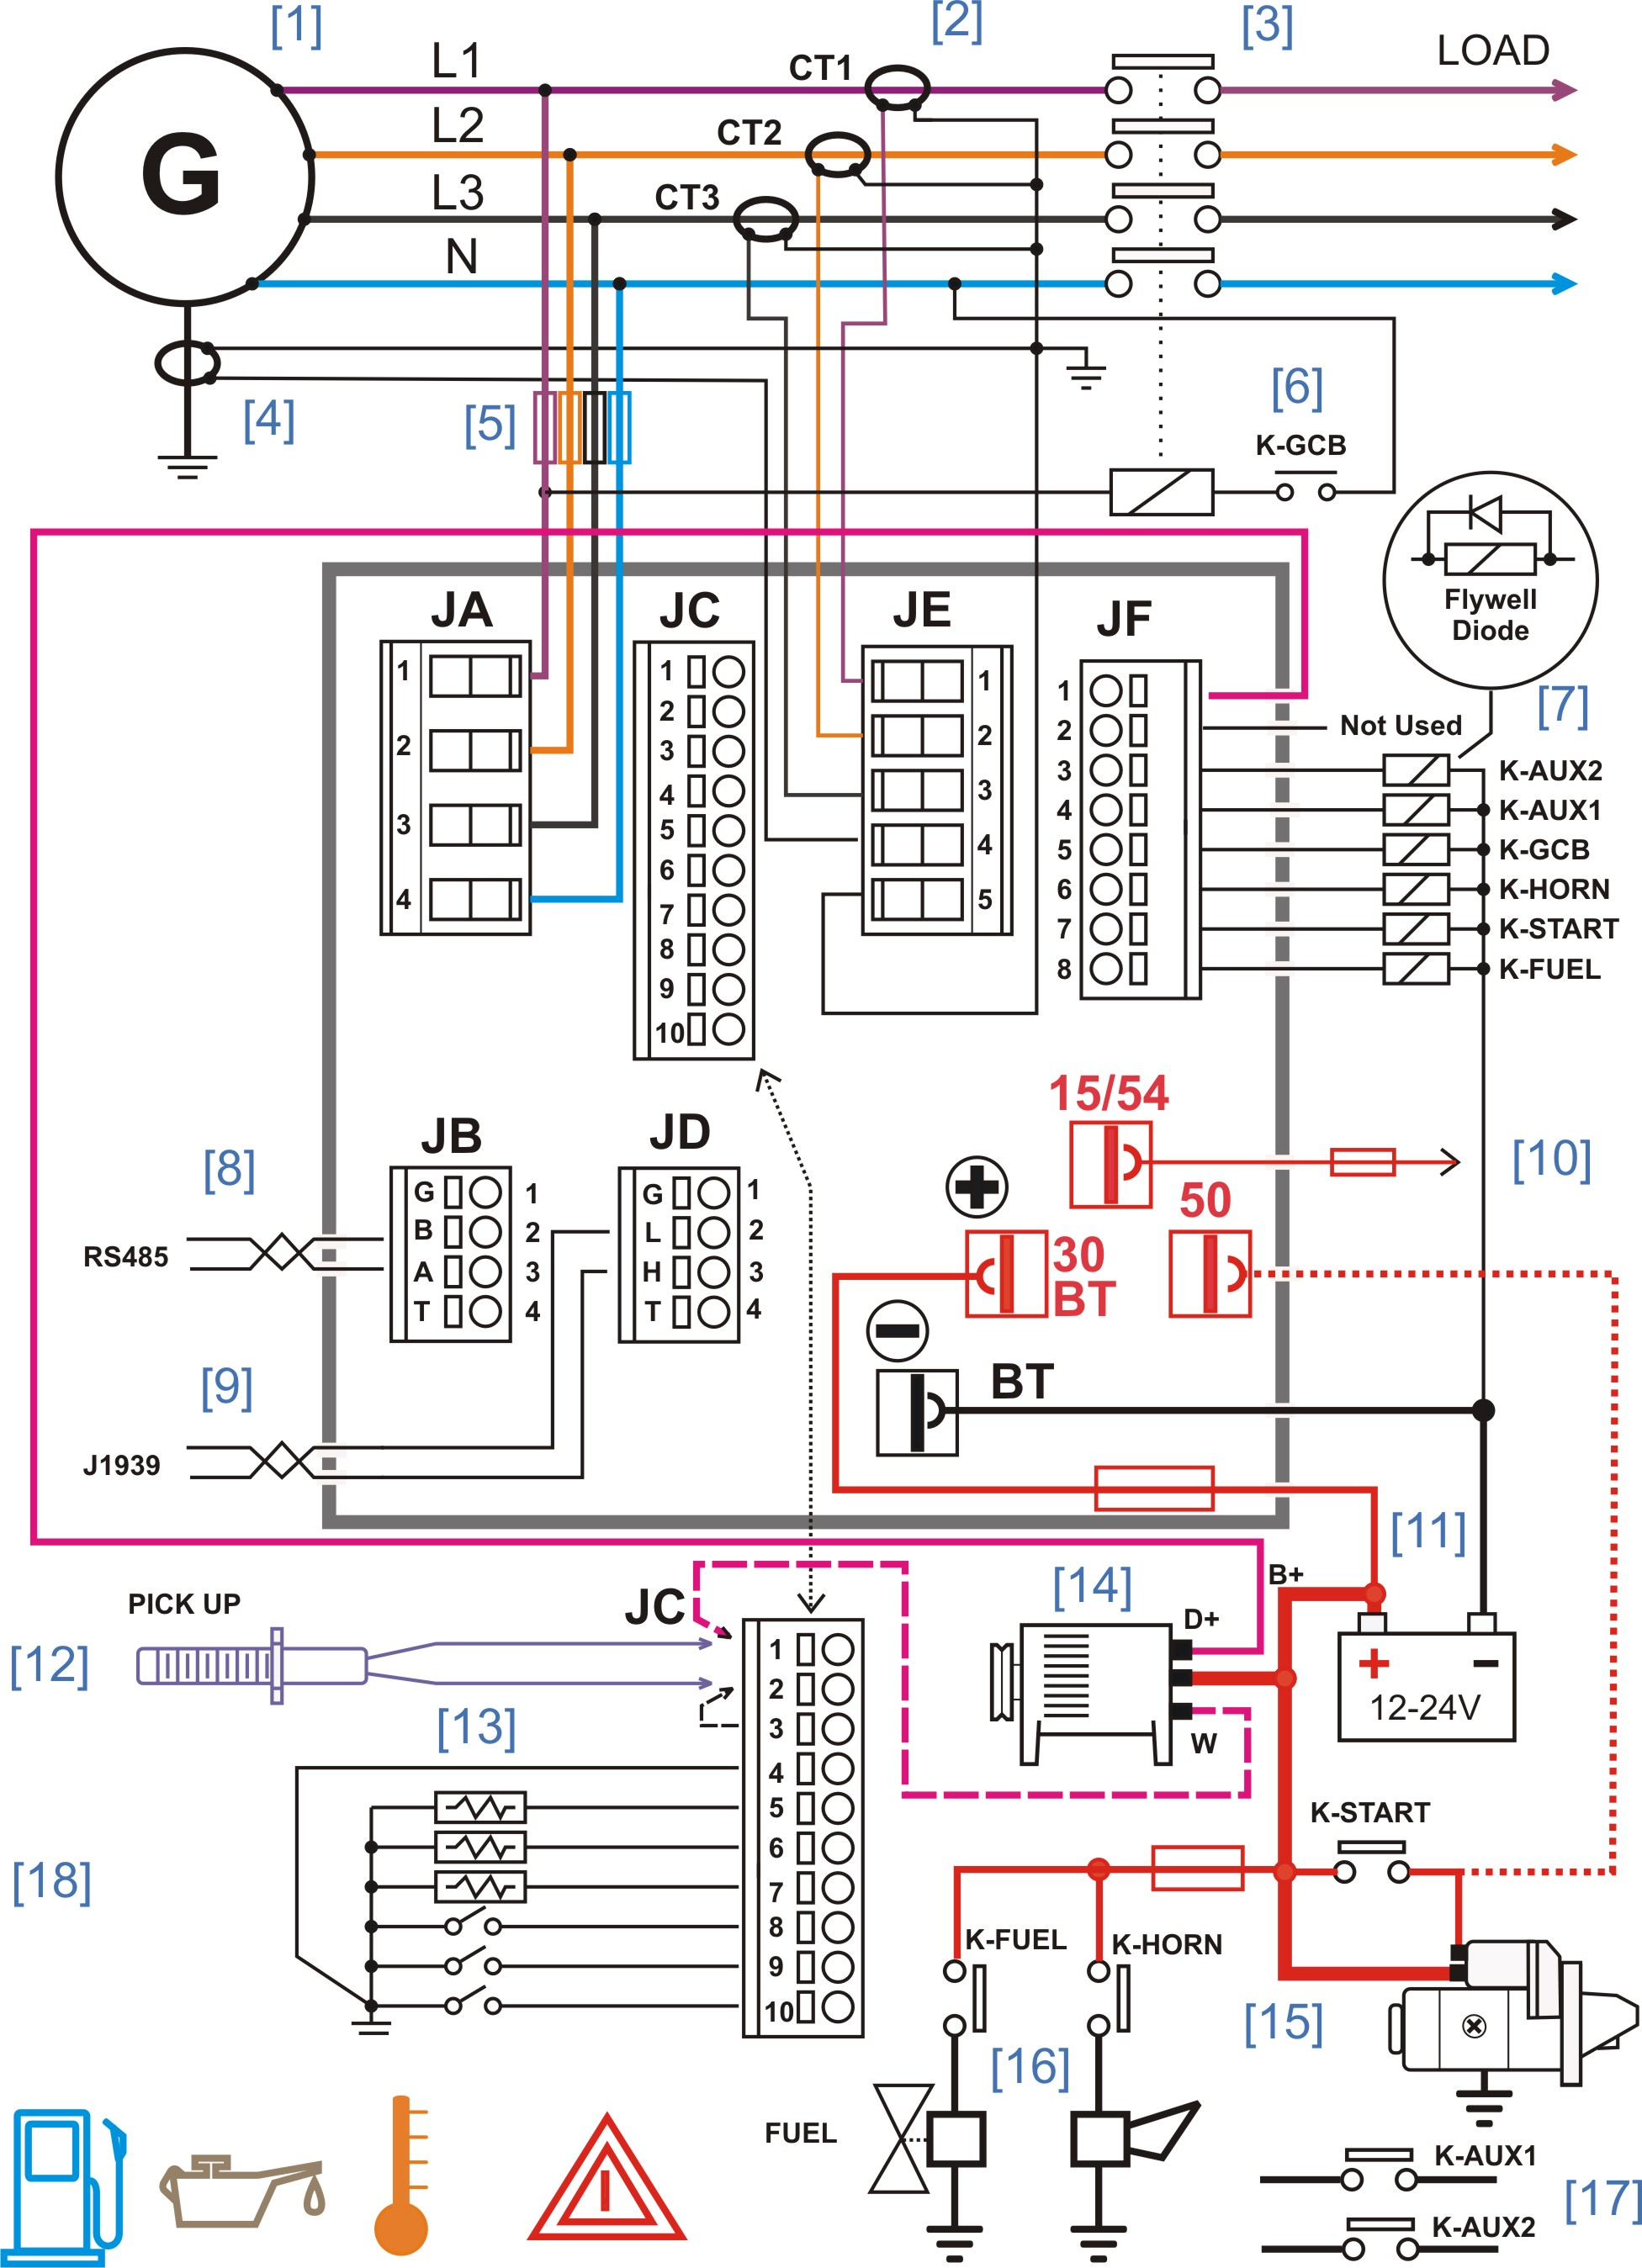 Diesel Generator Control Panel Wiring Diagram diesel generator control panel wiring diagram genset controller quick car ignition control panel wiring diagram at bayanpartner.co